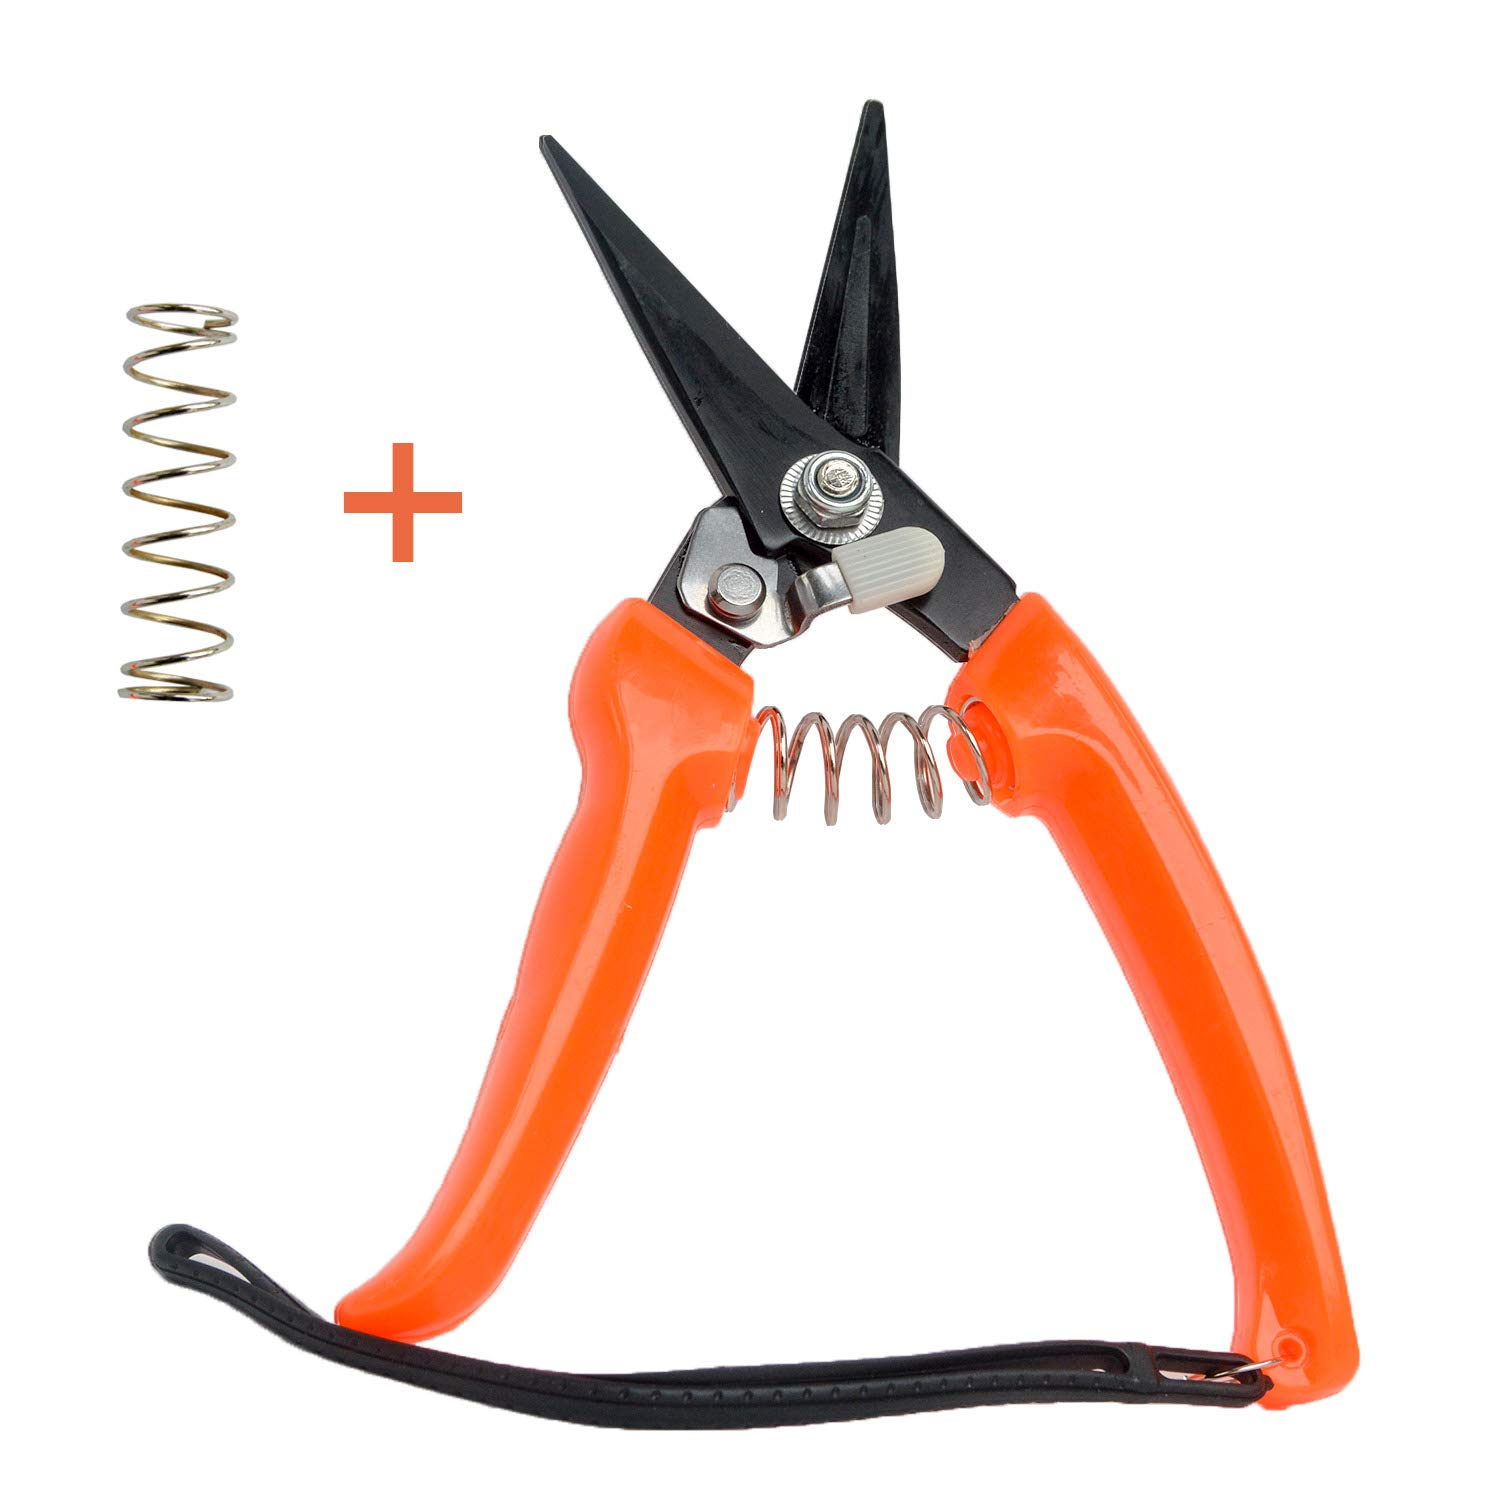 Hoof Trimmers Goat Hoof Trimming Shears Nail Clippers for Sheep, Alpaca, Lamb Hooves Multiuse Carbon Steel Shrub Trimmer with Stronger Spring Load